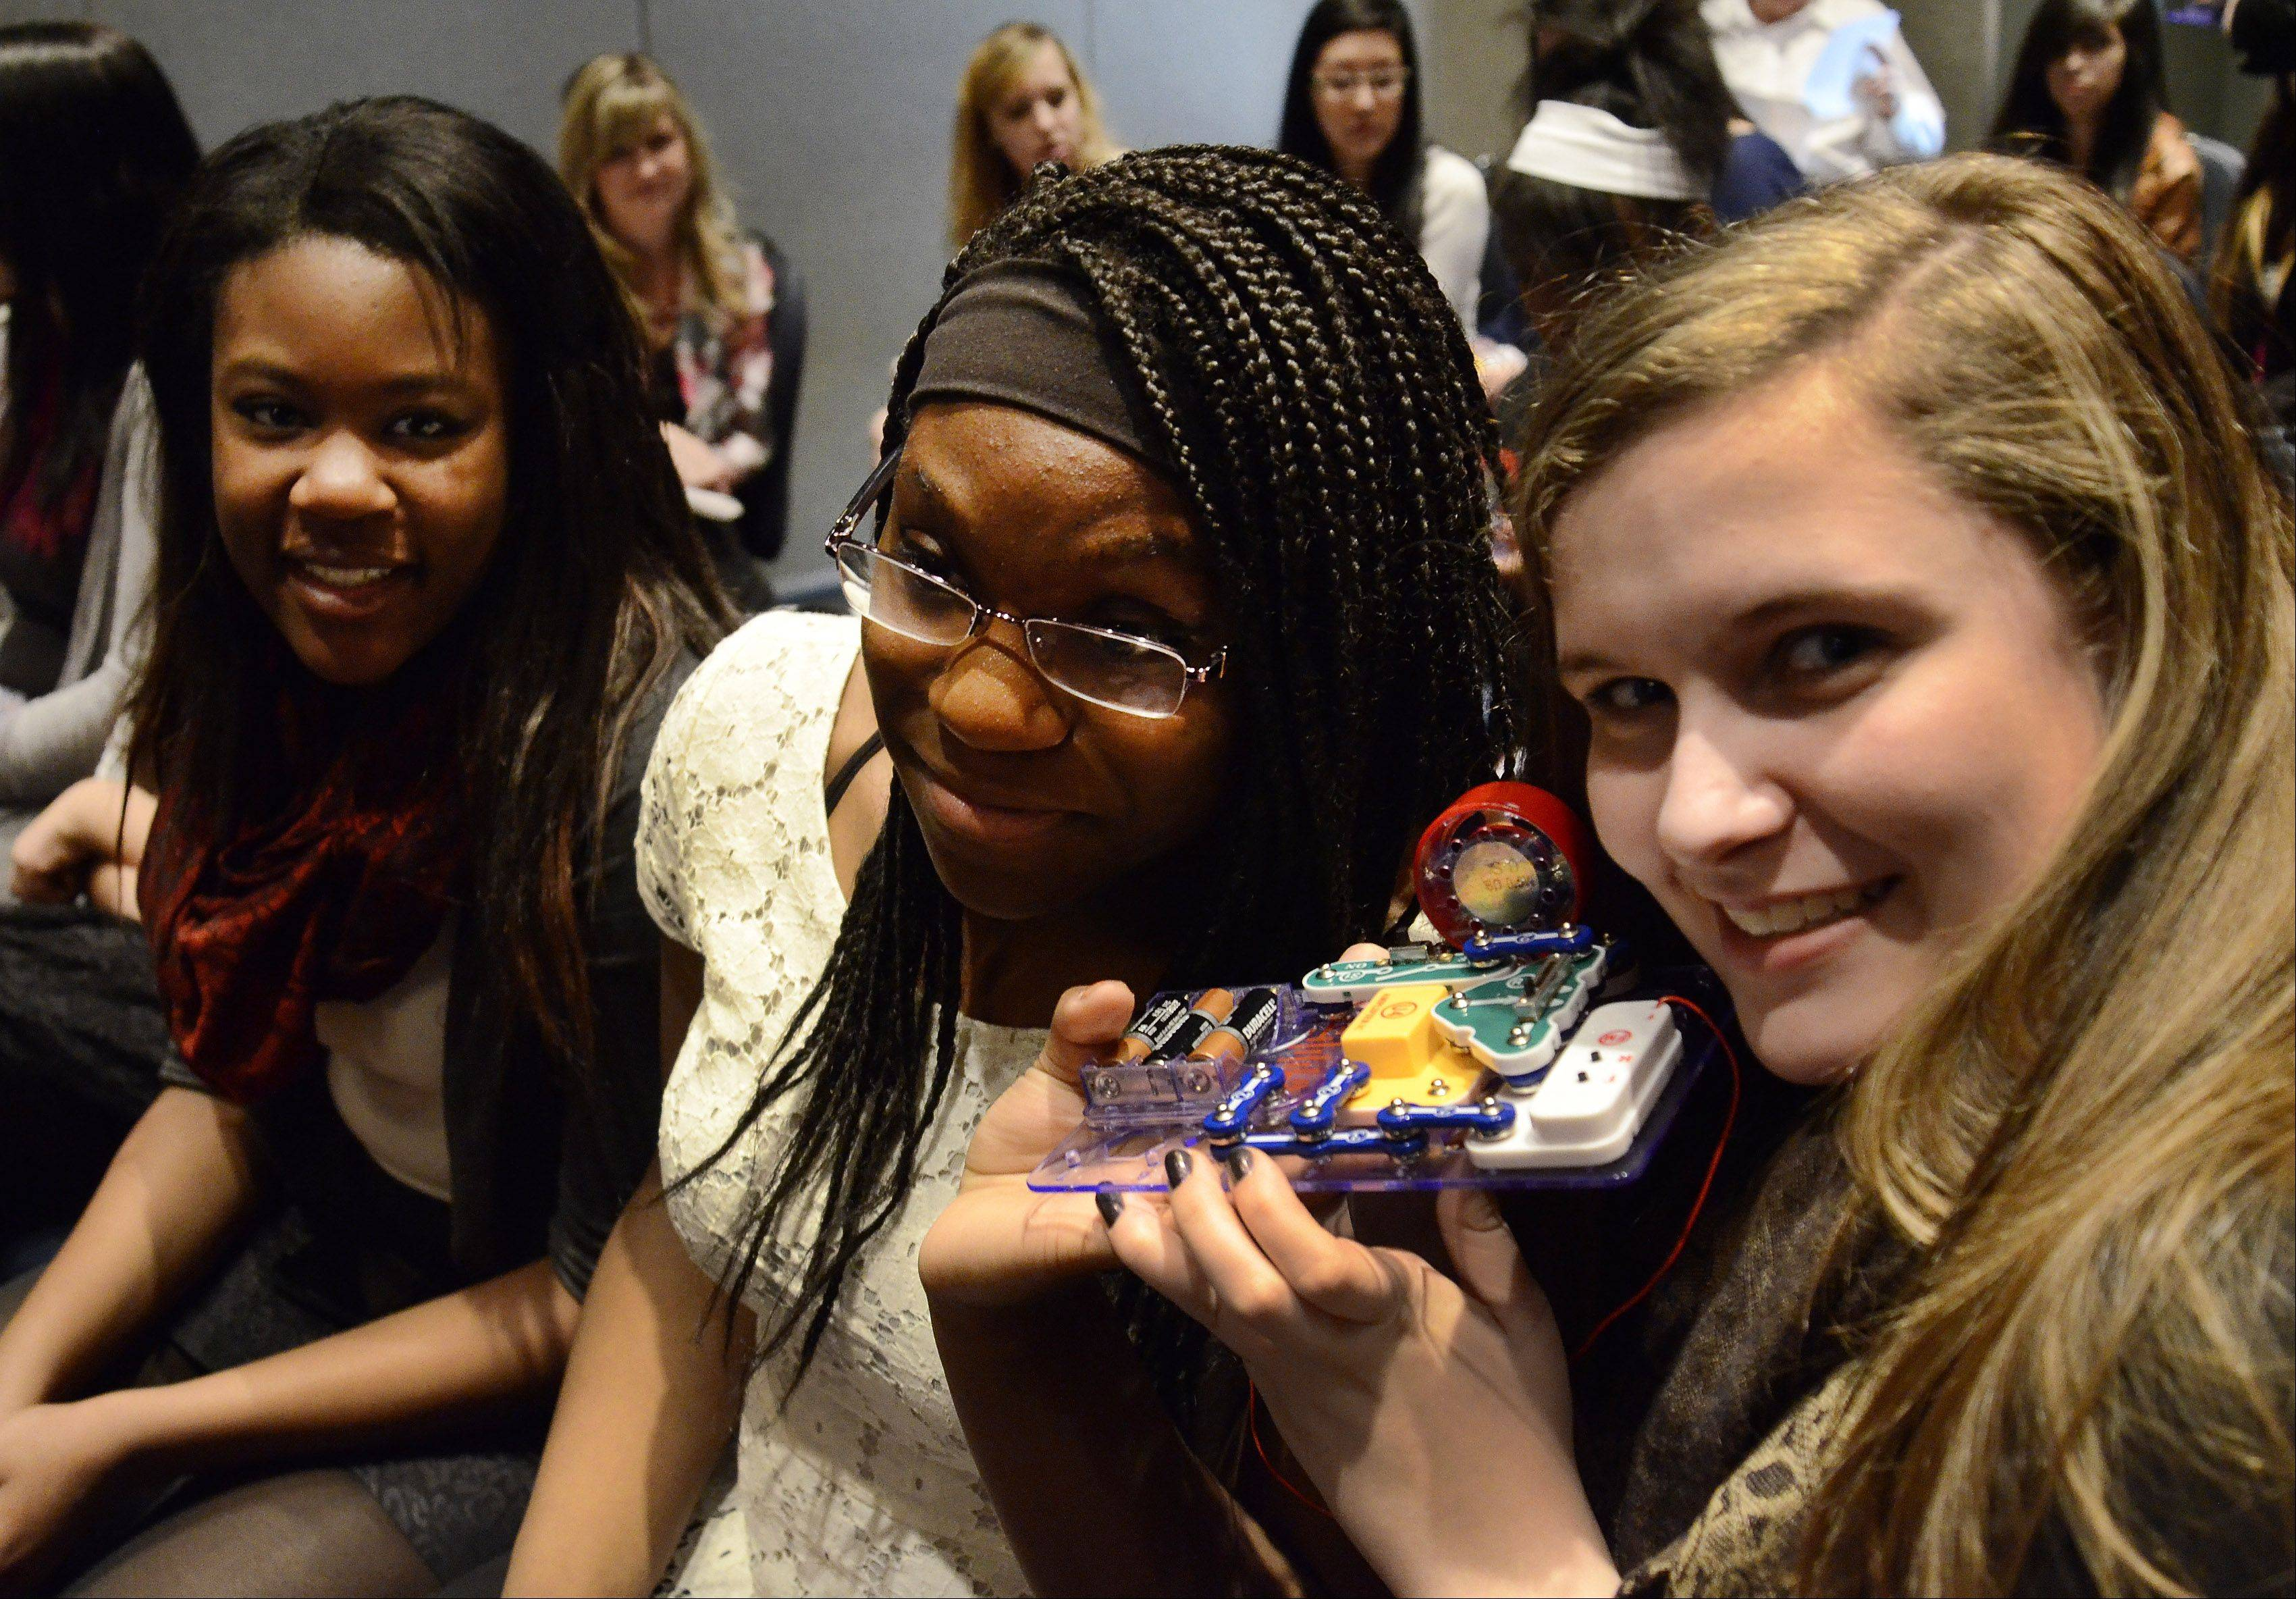 South Elgin High School freshmen from left, Lola Ojomo, Bridgette Williams and Rachel Priore tune in the FM radio they built from a kit Thursday during DeVry University's HerWorld program, educating girls about in-demand STEM (science, technology, engineering, mathematics) careers. The program was at the Stonegate Conference Centre in Hoffman Estates.